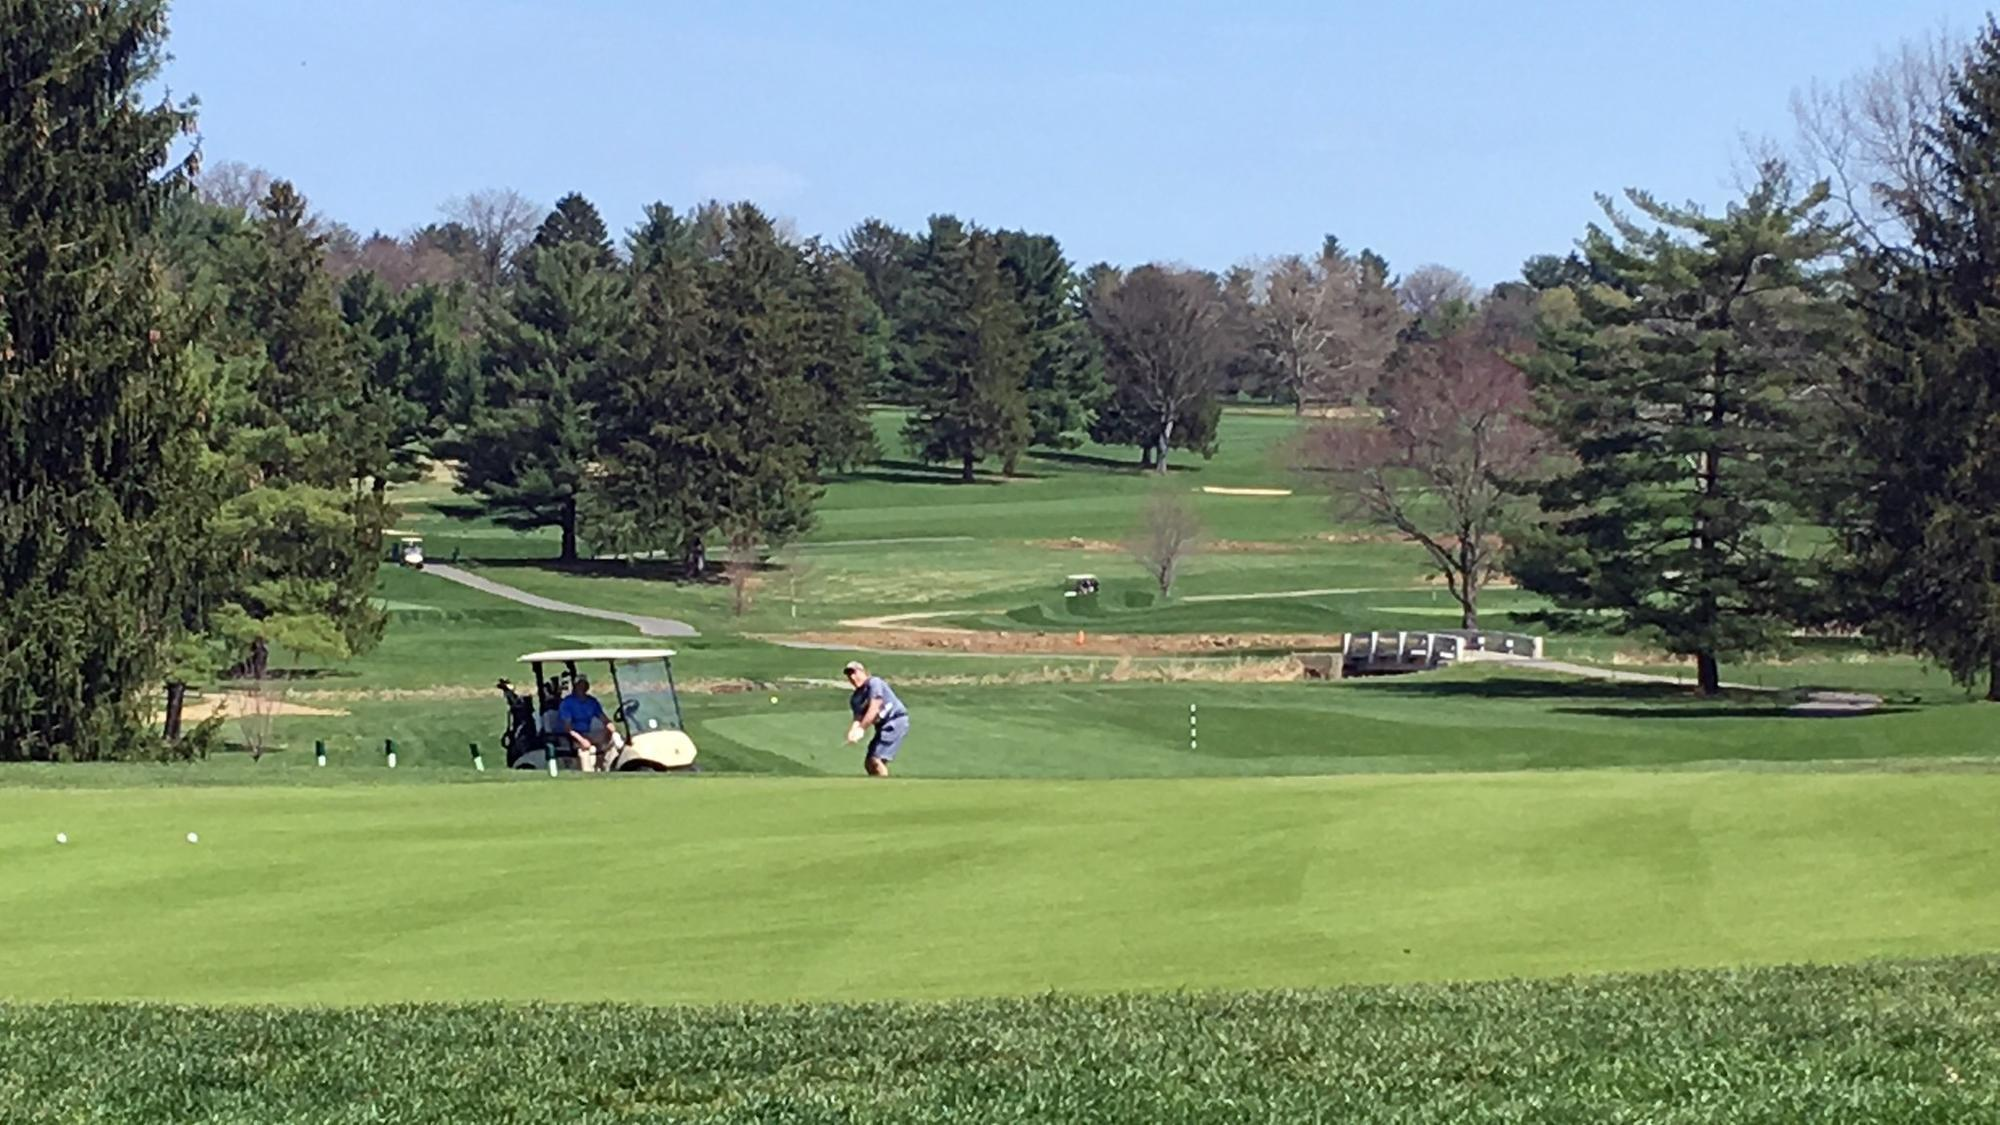 2018 Lehigh Valley Golf Course Guide - The Morning Call on guy golf cart, single golf cart, volunteer golf cart, portable golf cart, apple golf cart, green golf cart, performance golf cart, woods golf cart, white golf cart, battery golf cart, best golf cart, fun golf cart, black golf cart, set golf cart, parker golf cart, play golf cart, ace golf cart, controller golf cart, tournament golf cart, club golf cart,